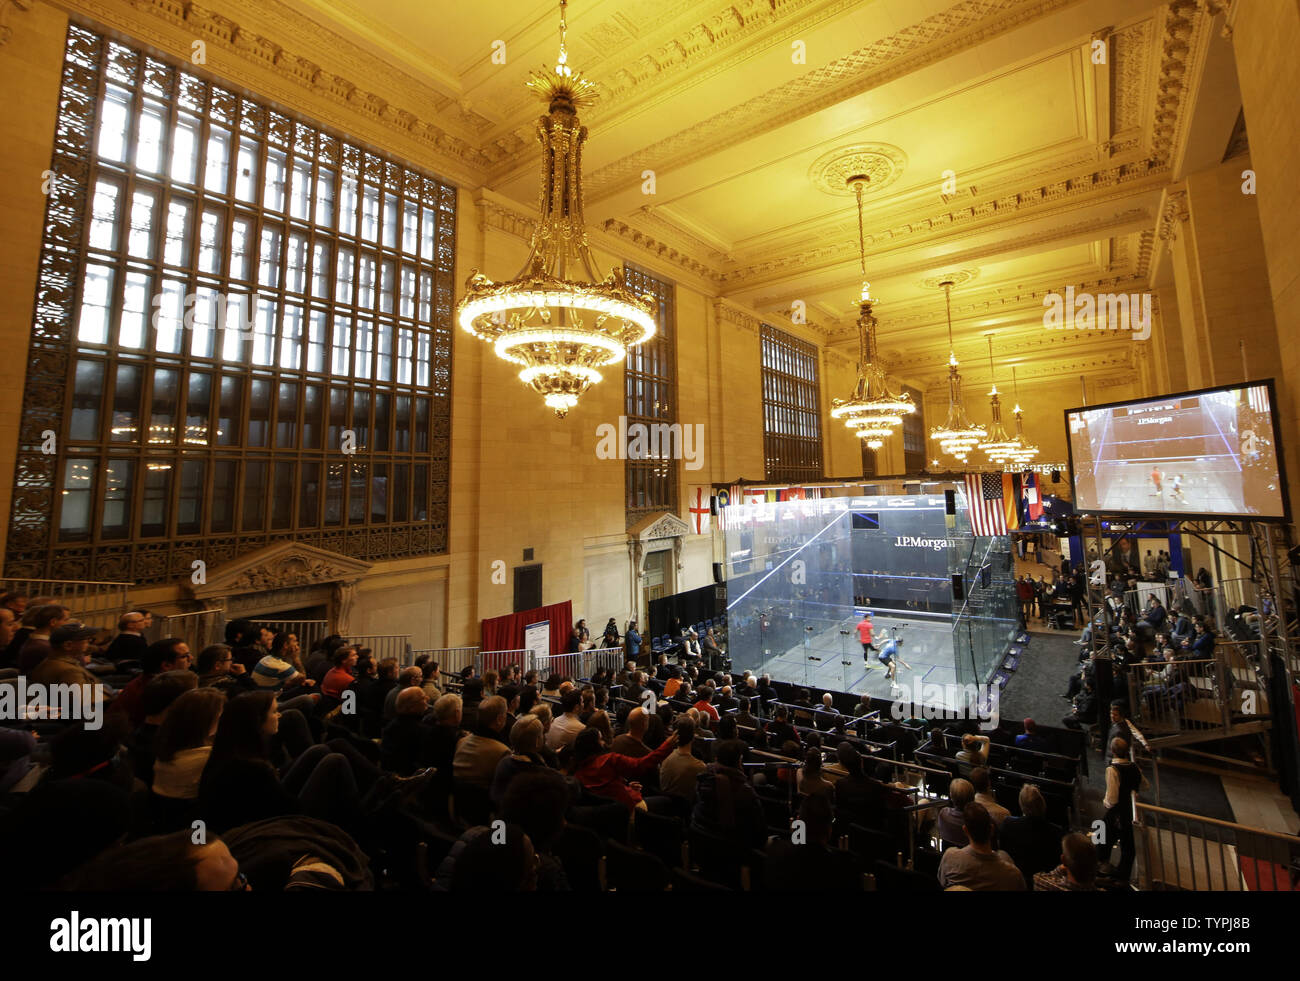 Fans sit in the stands and watch the action at JPMorgan Chase & Co.'s 18th annual  'Tournament of Champions' Professional Squash Tournament in Grand Central Terminal in New York City on January 16, 2015. The annual tournament is scheduled to continue through January 23rd.      Photo by John Angelillo/UPI - Stock Image